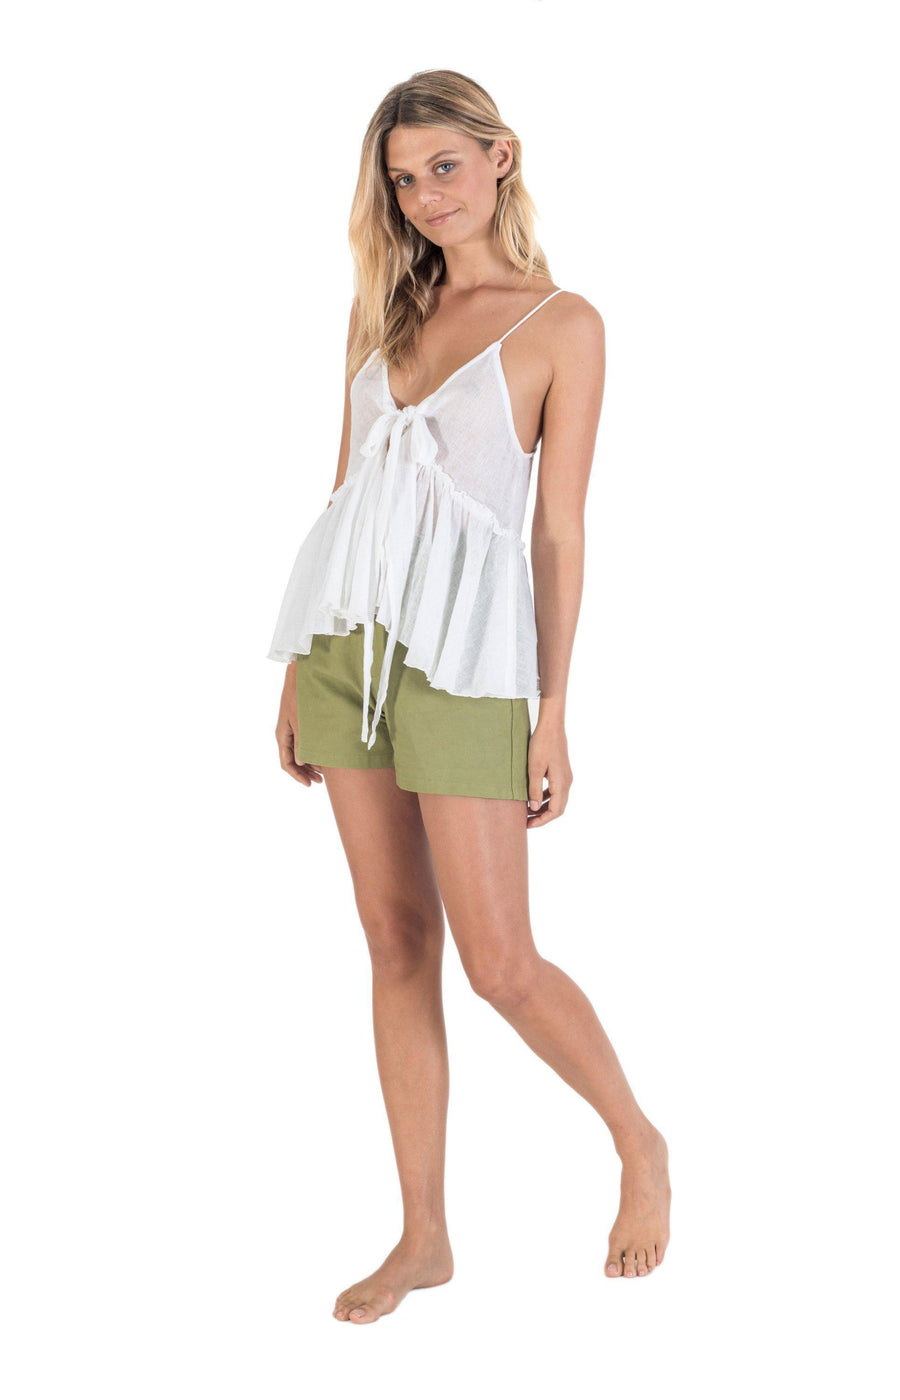 The Bare Road Cruise Top White